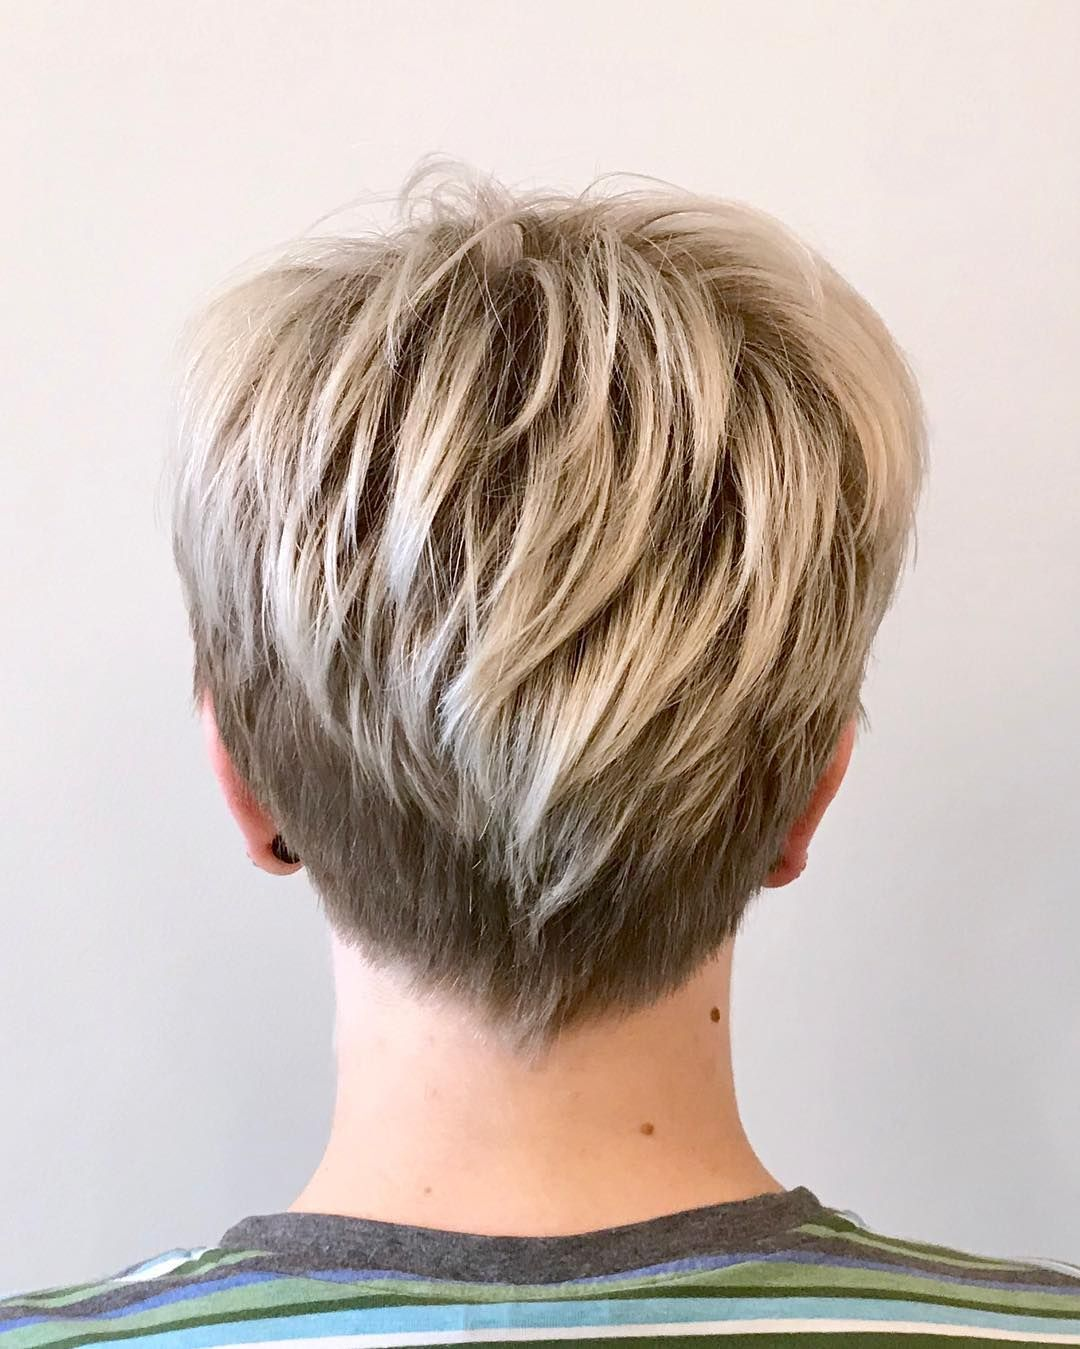 Rock hairstyle boy attention short haired beauties rock the pixie styles